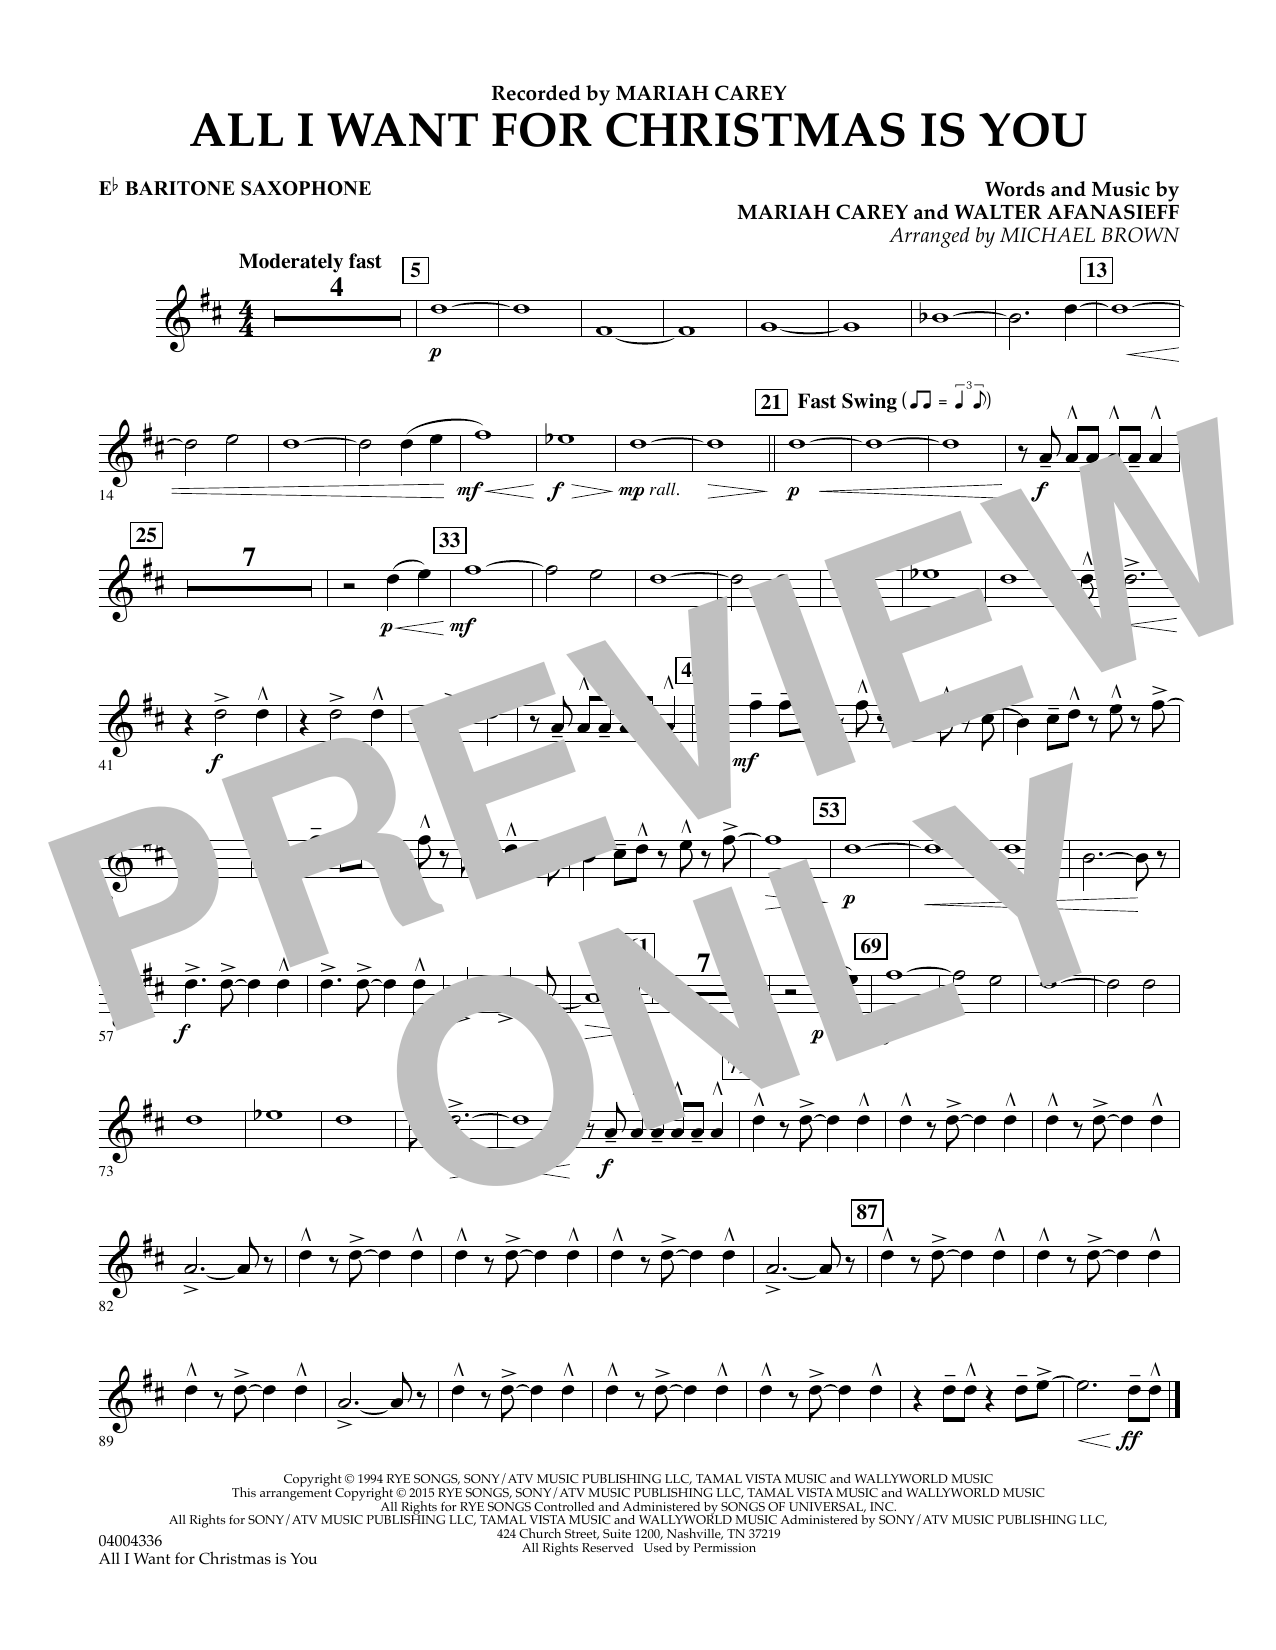 All I Want for Christmas Is You (arr. Michael Brown) - Eb Baritone Saxophone (Concert Band)